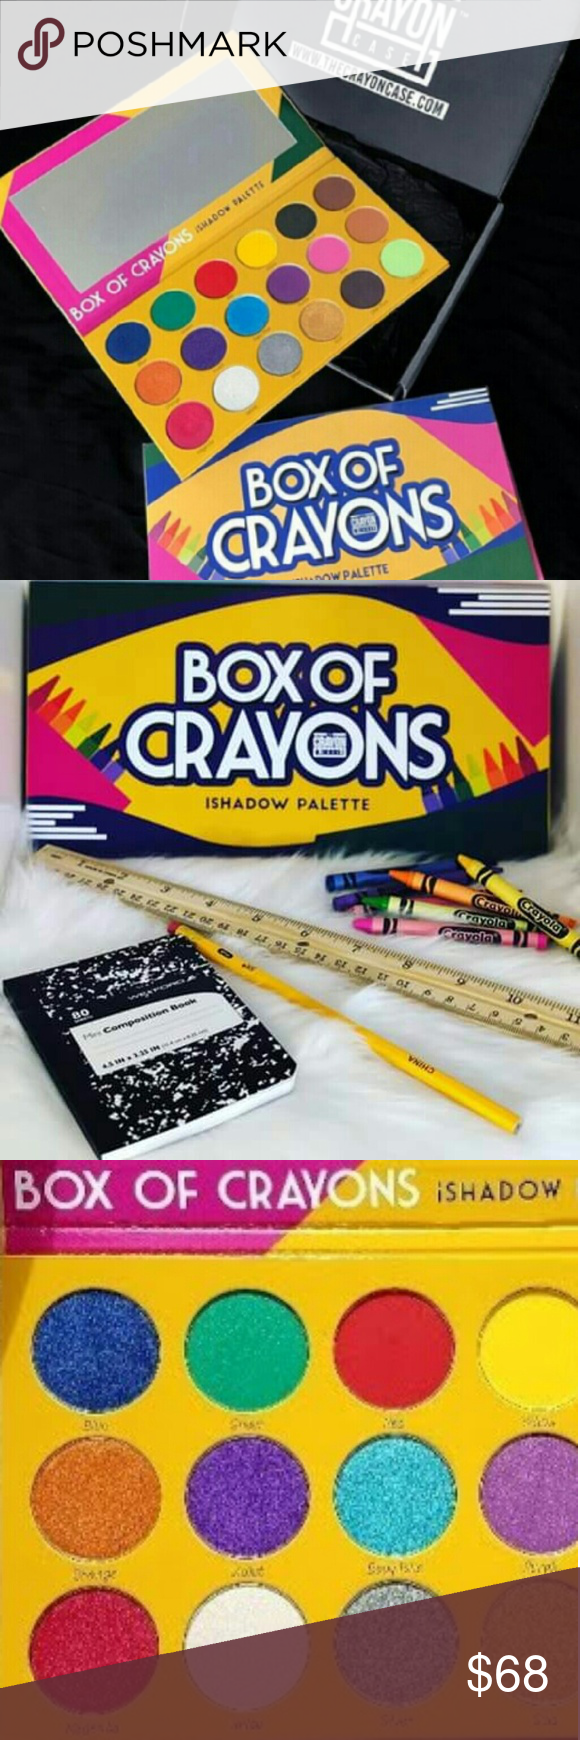 Box of Crayons ishadow palette BNIB & authentic NWT